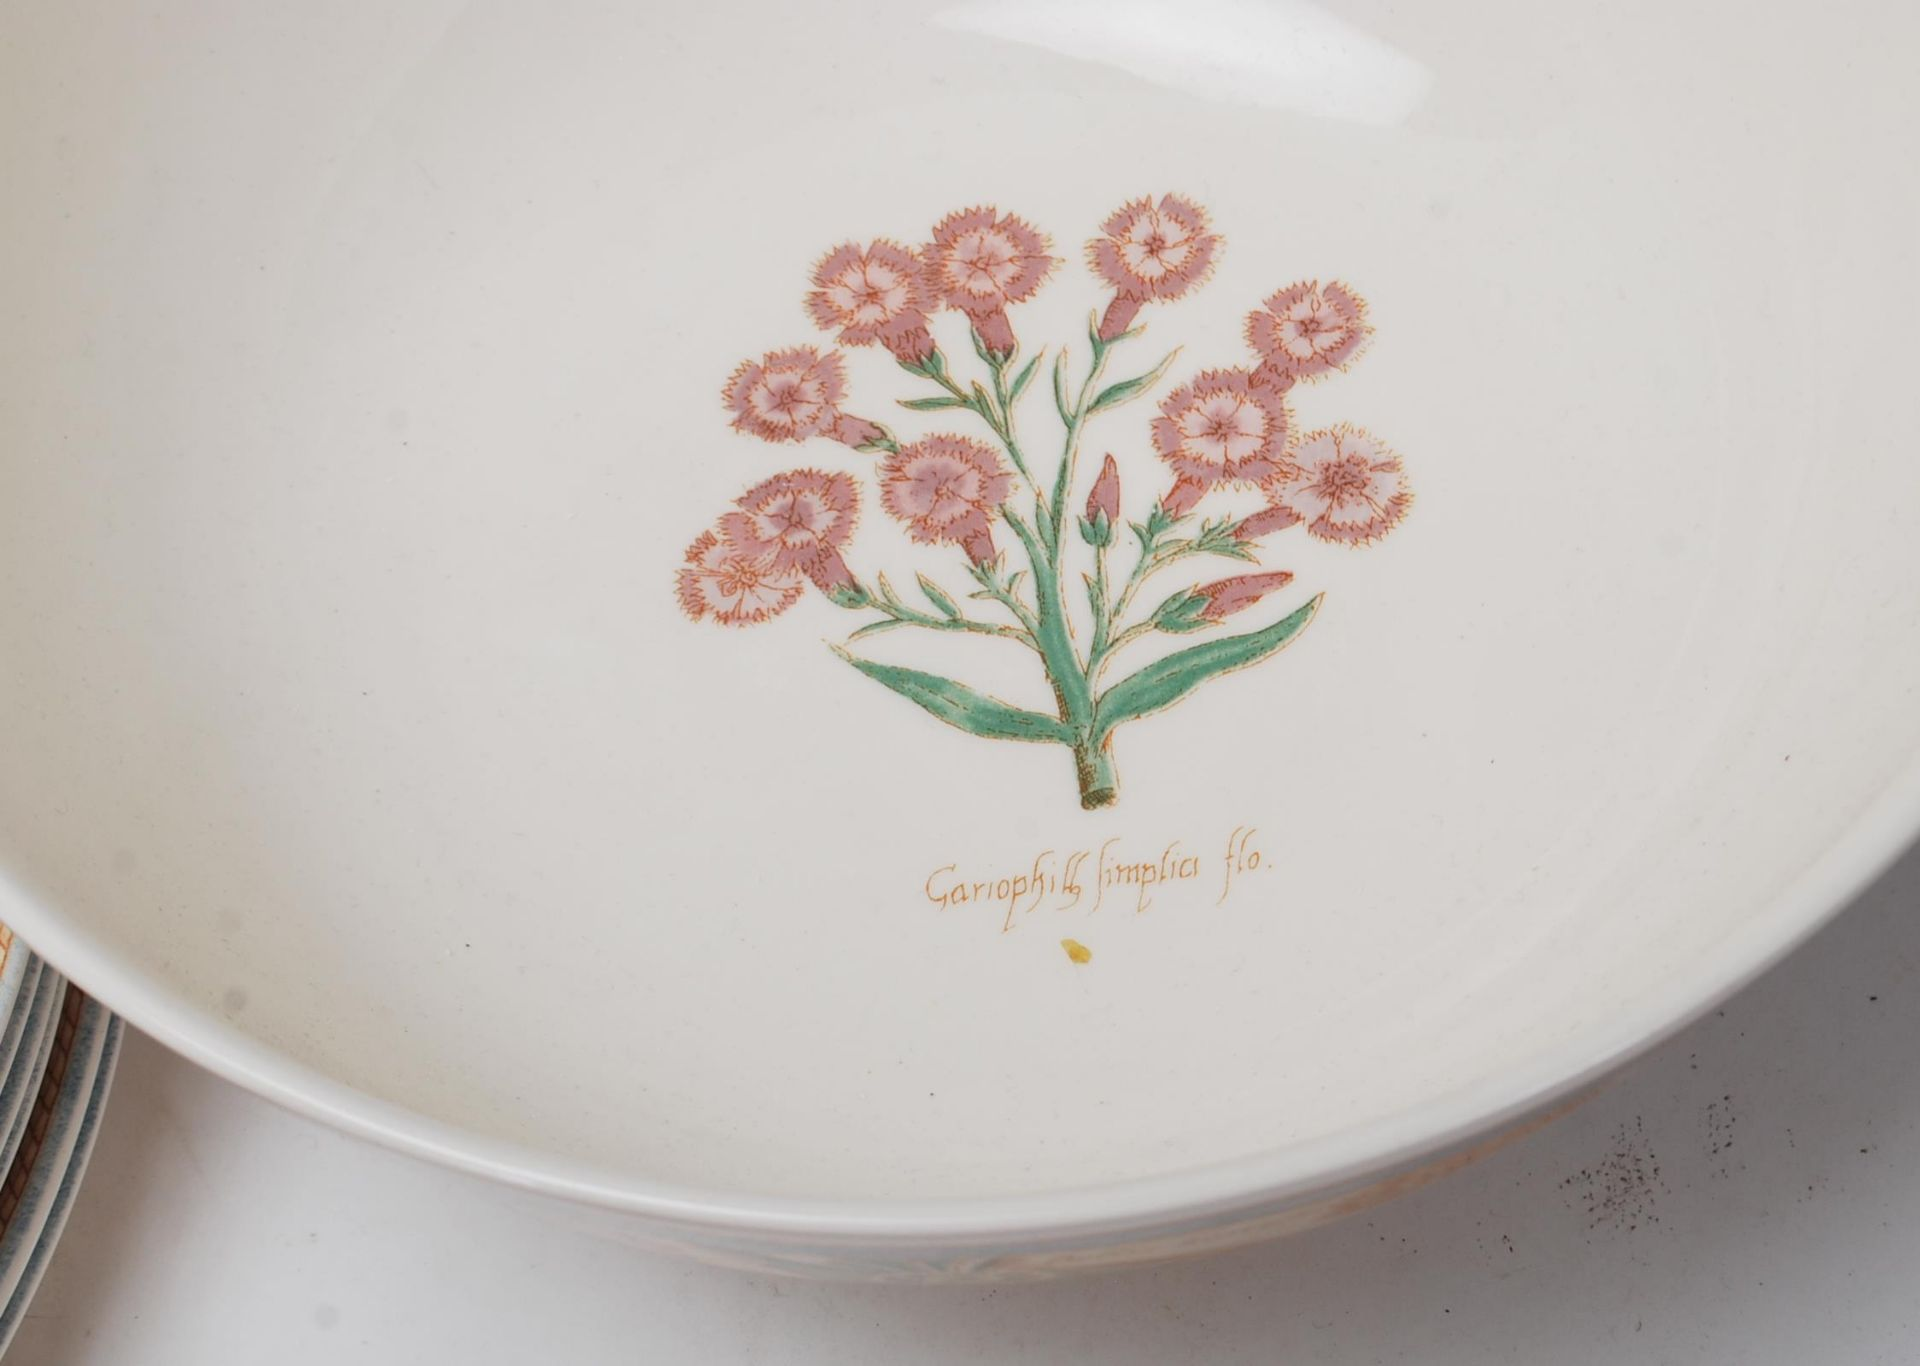 A LARGE 20TH CENTURY WEDGWOOD DINNER SERVICE WITH GRDEN MAZE PATTERN - Image 11 of 11